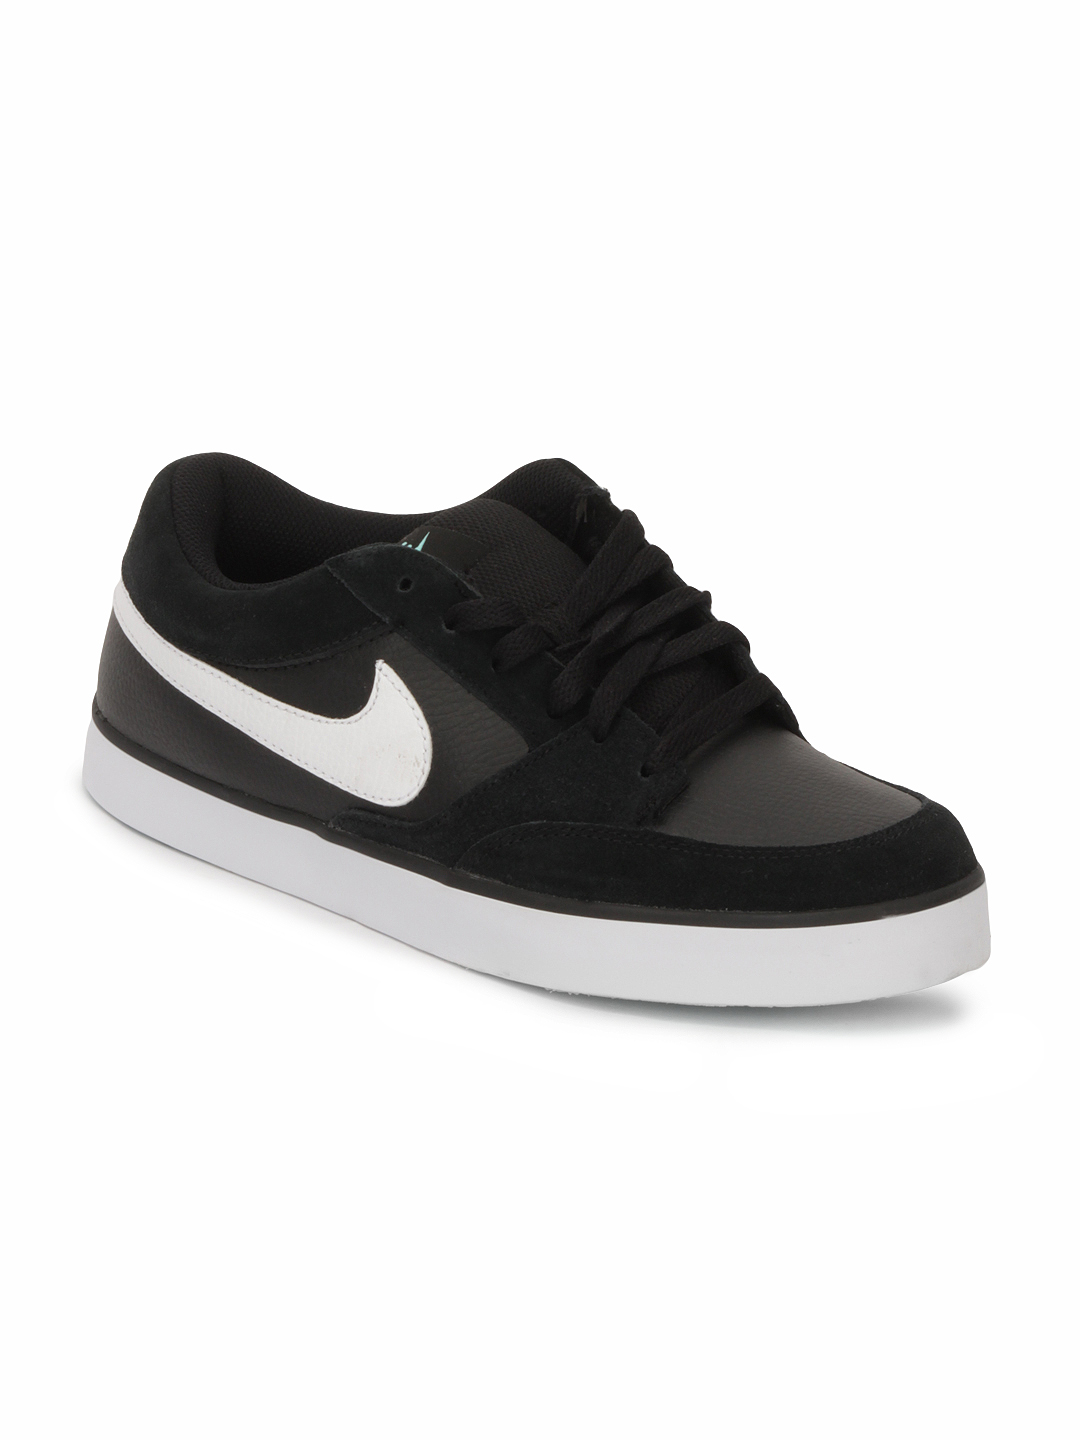 Nike Men Avid Black Casual Shoes